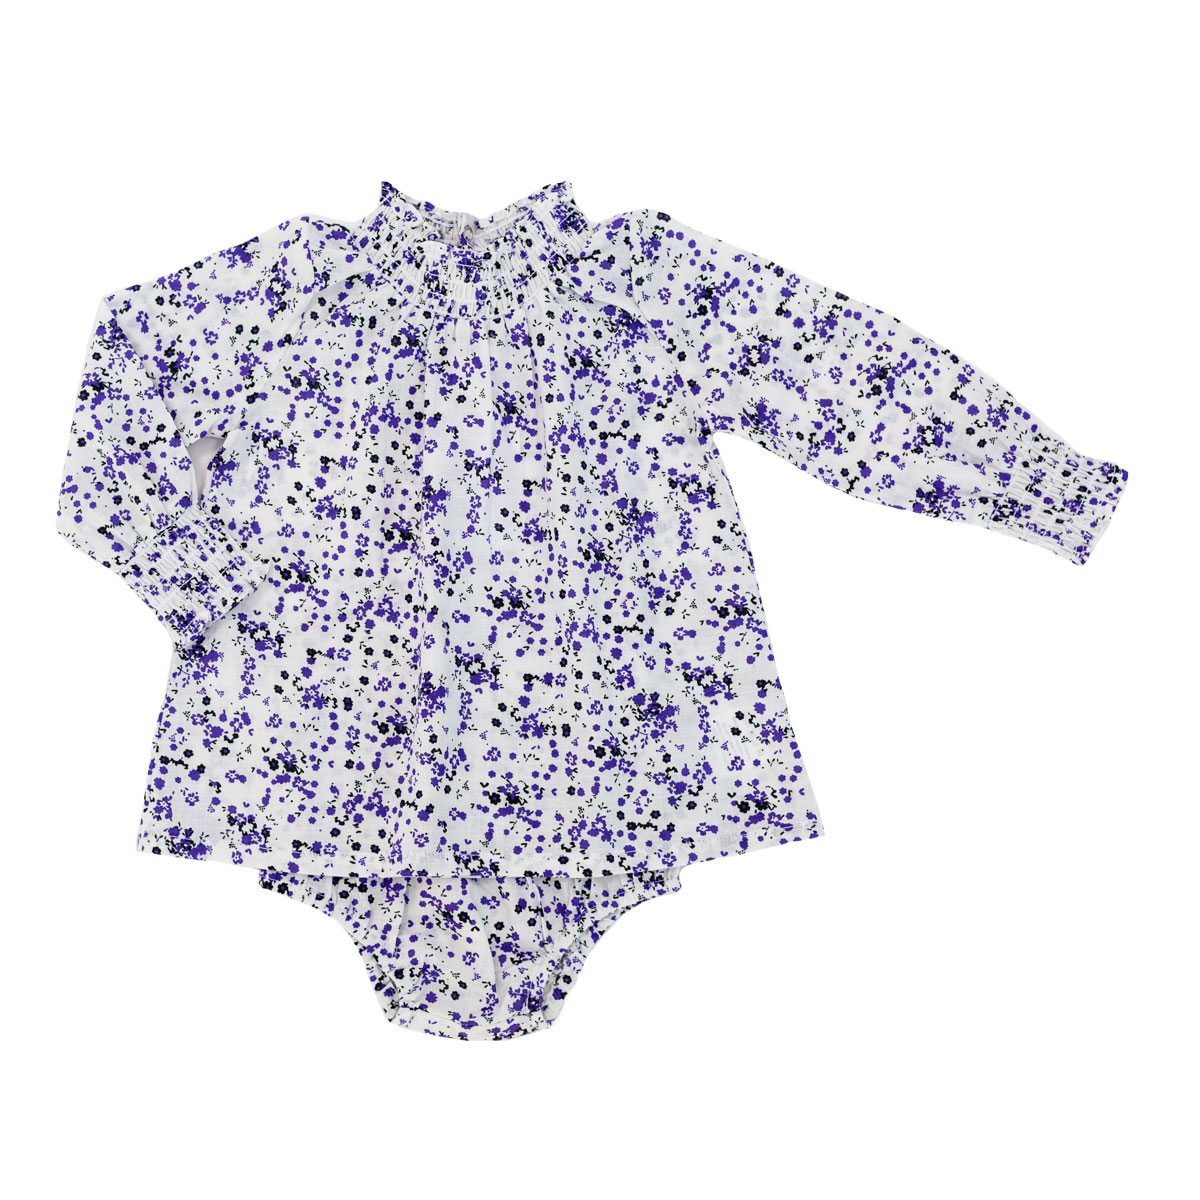 Madras Made Long Sleeve Cotton Top & Bloomer set in Bali